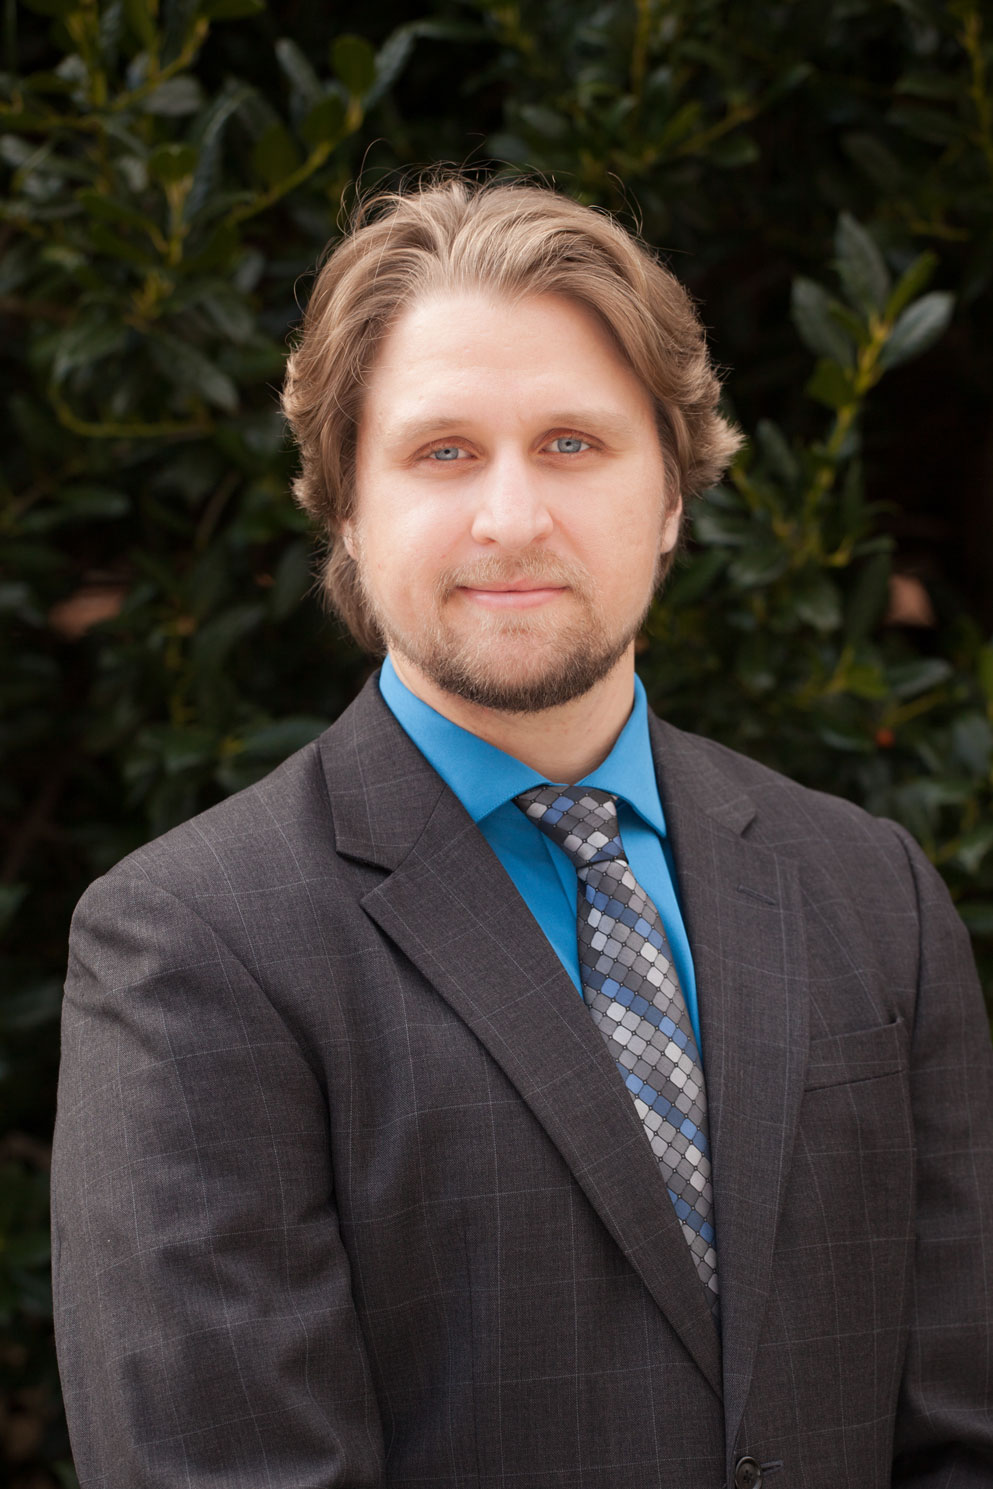 Photo of Greg Sauers, Personal Trust Administration specialist